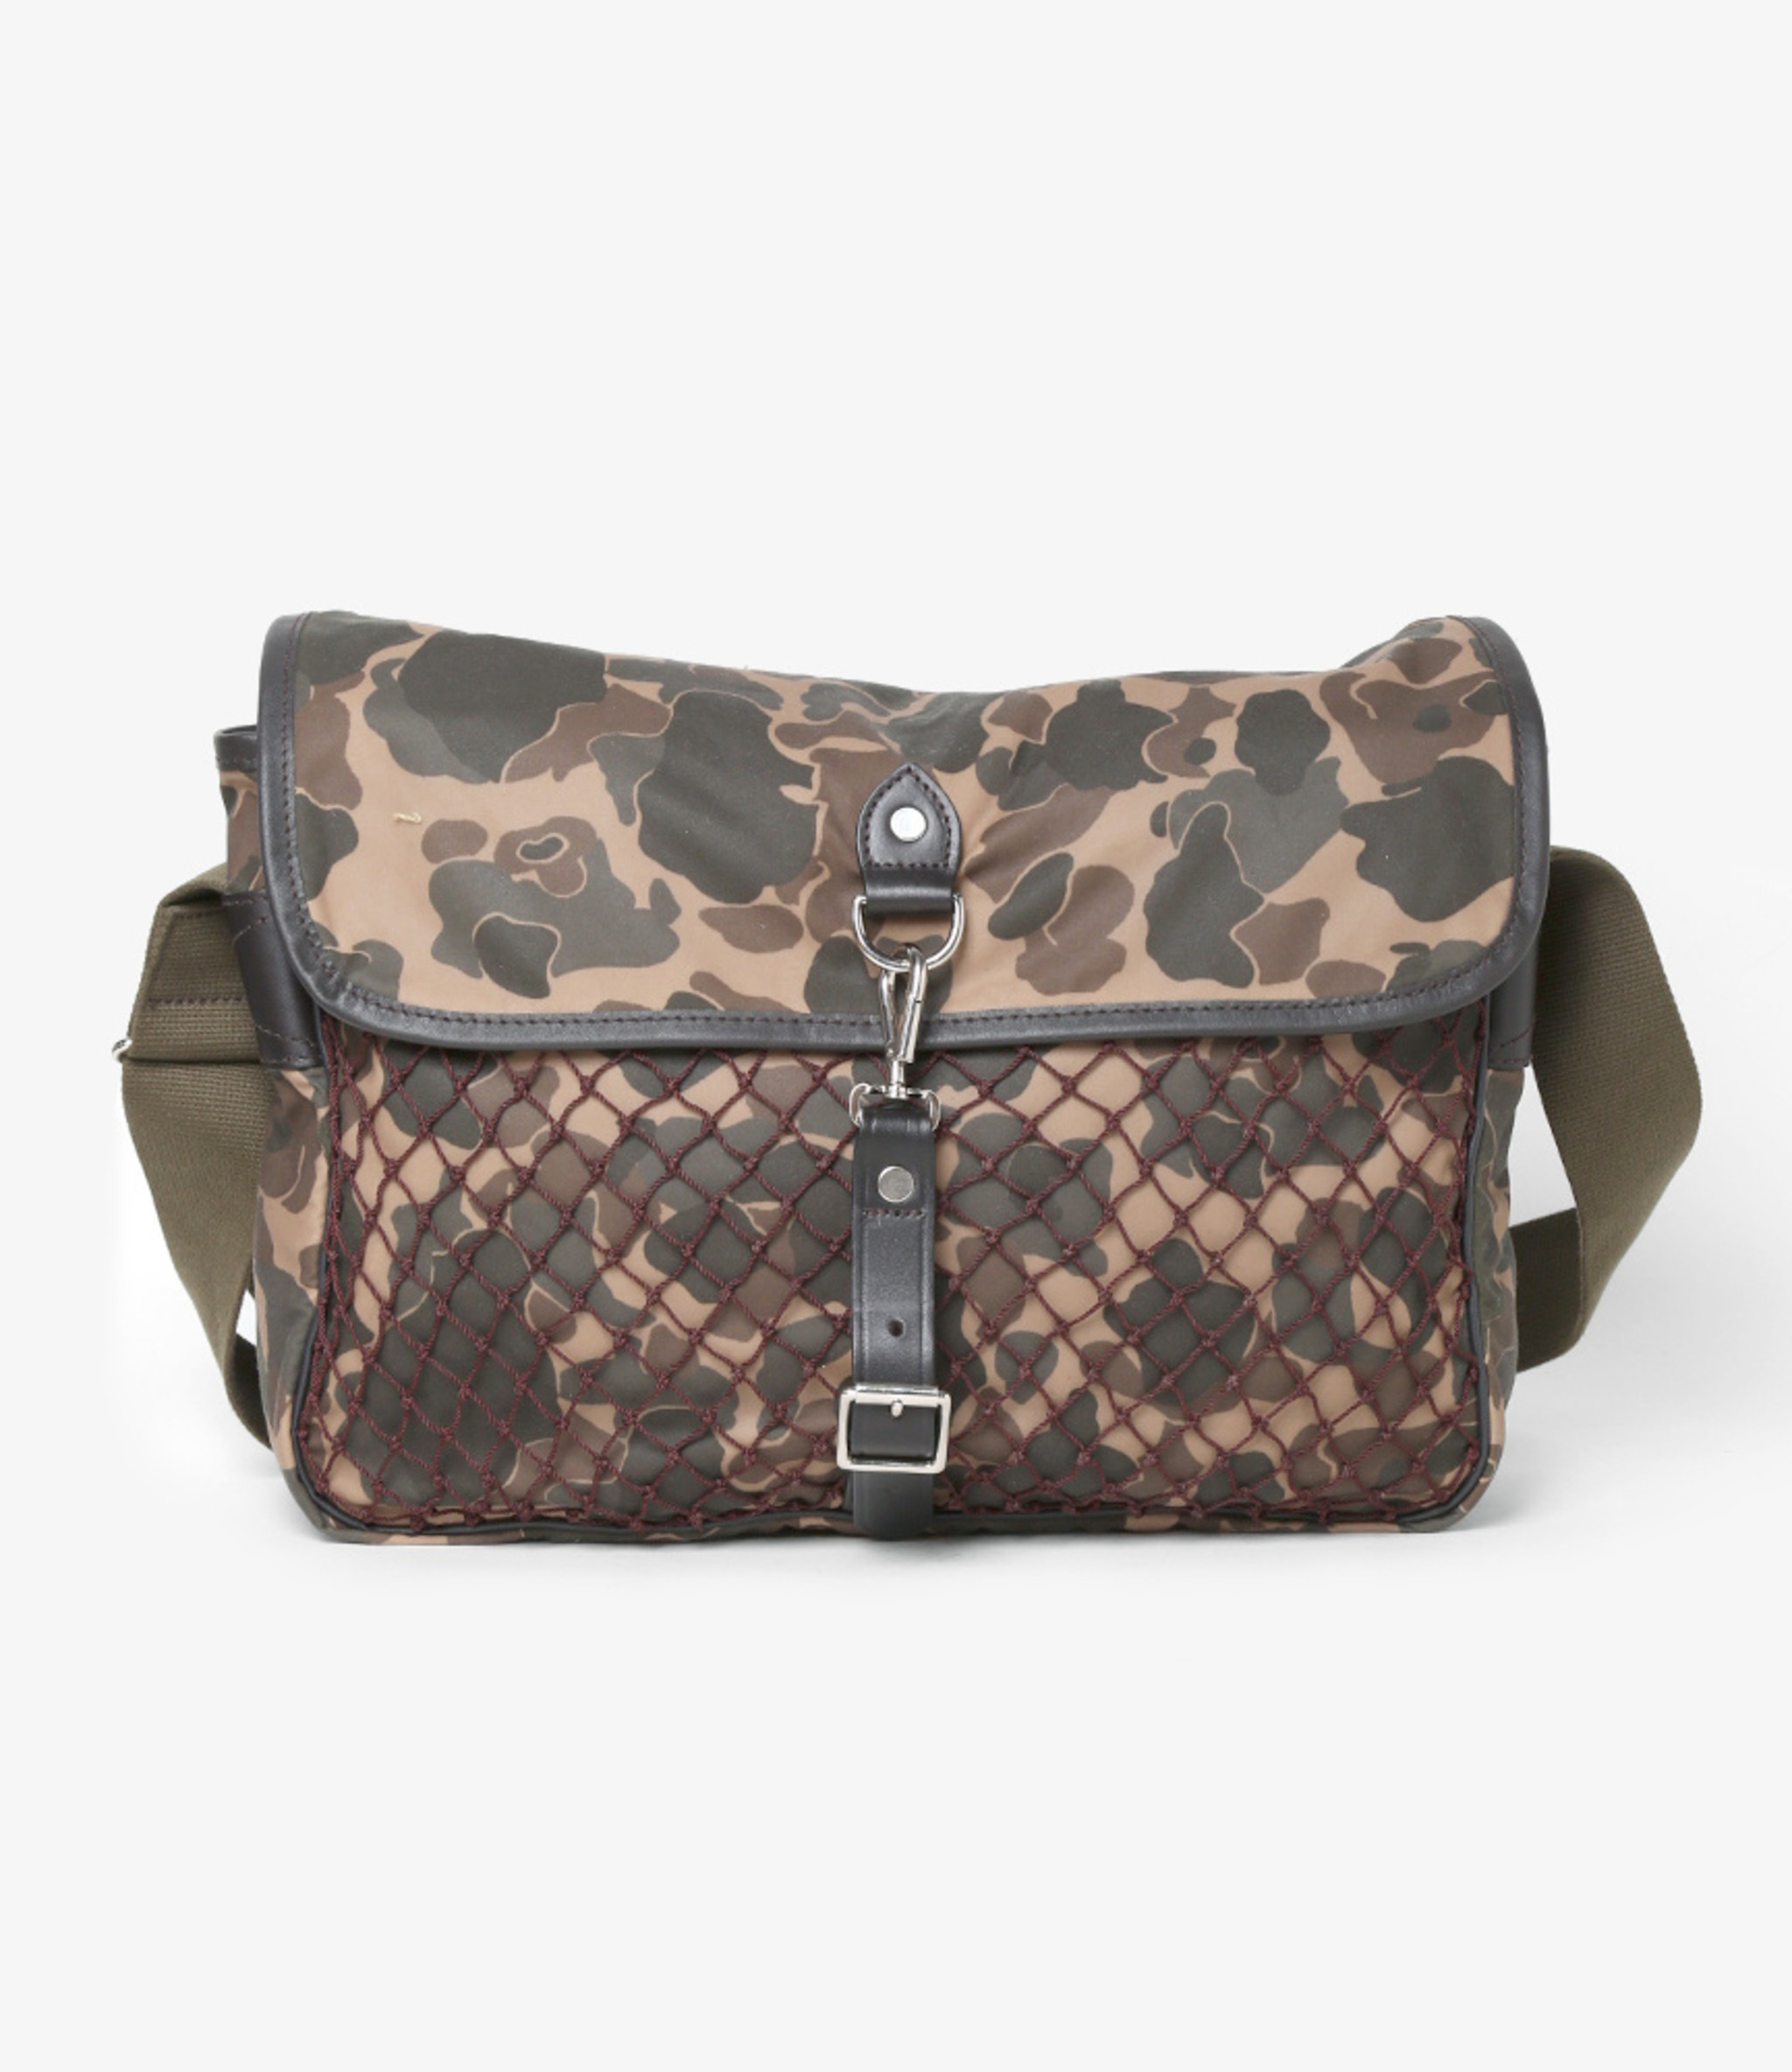 South2 West8 Wax Cotton Bag - Game